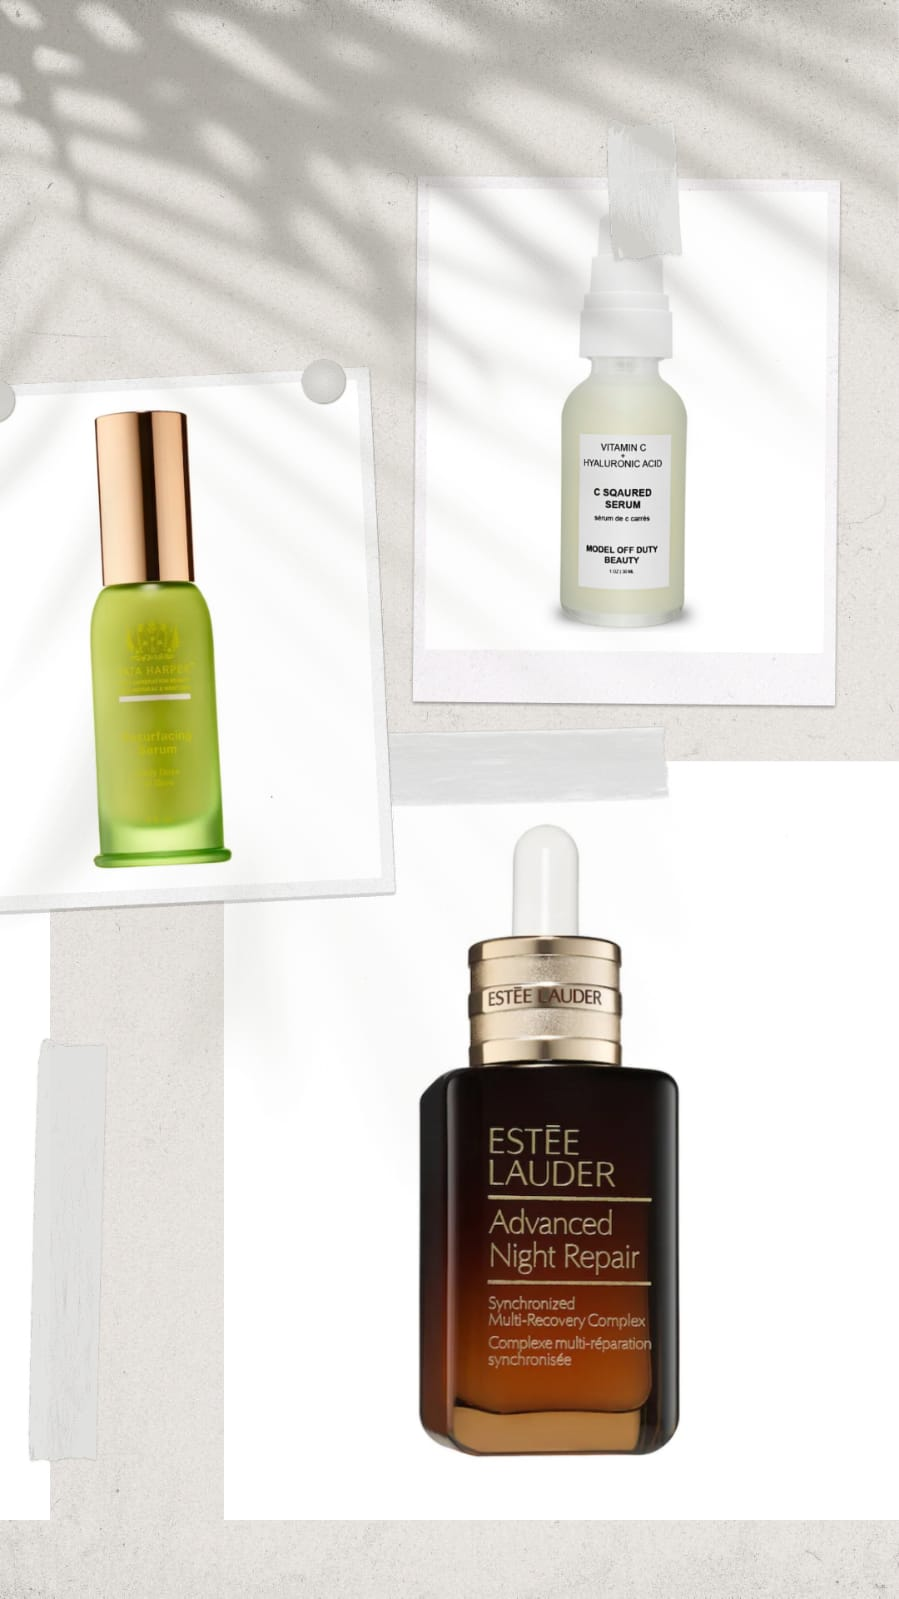 5 Best Facial Serums To Try This Year For Brighter & Firmer Skin